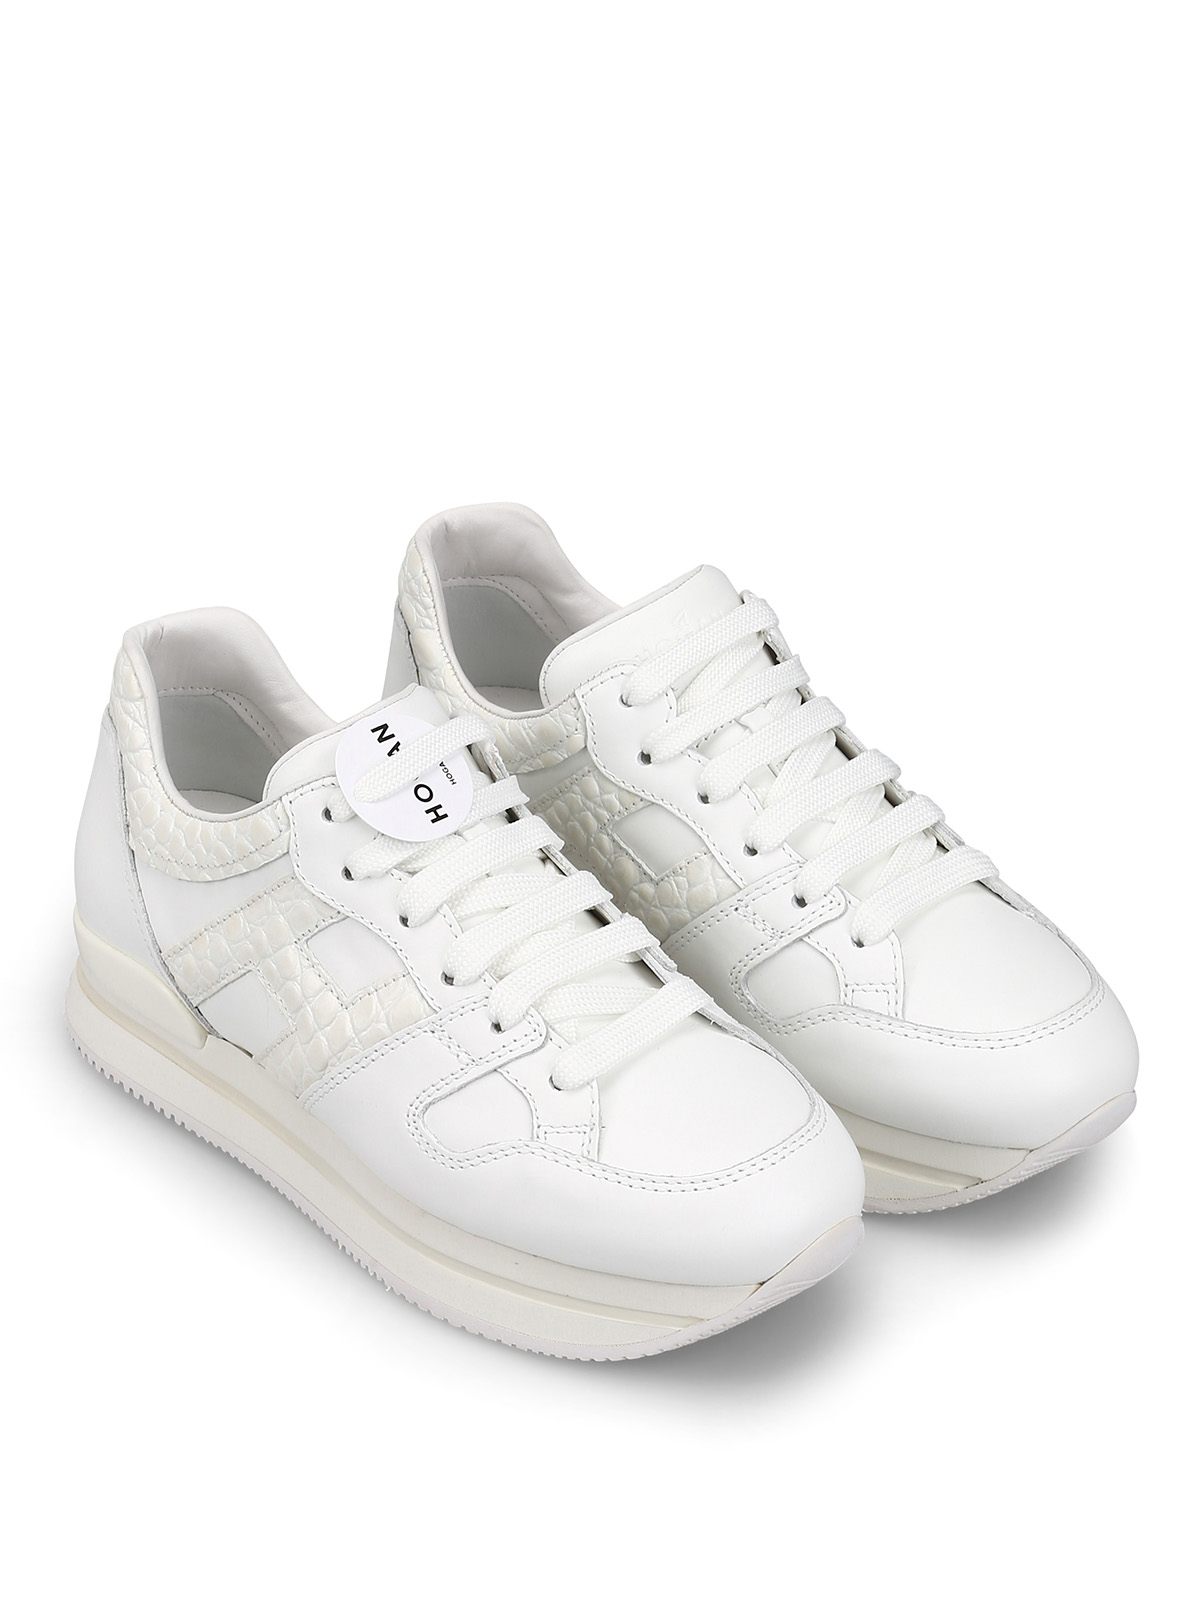 Trainers Hogan - H222 white leather sneakers - HXW2220T548KGKB001